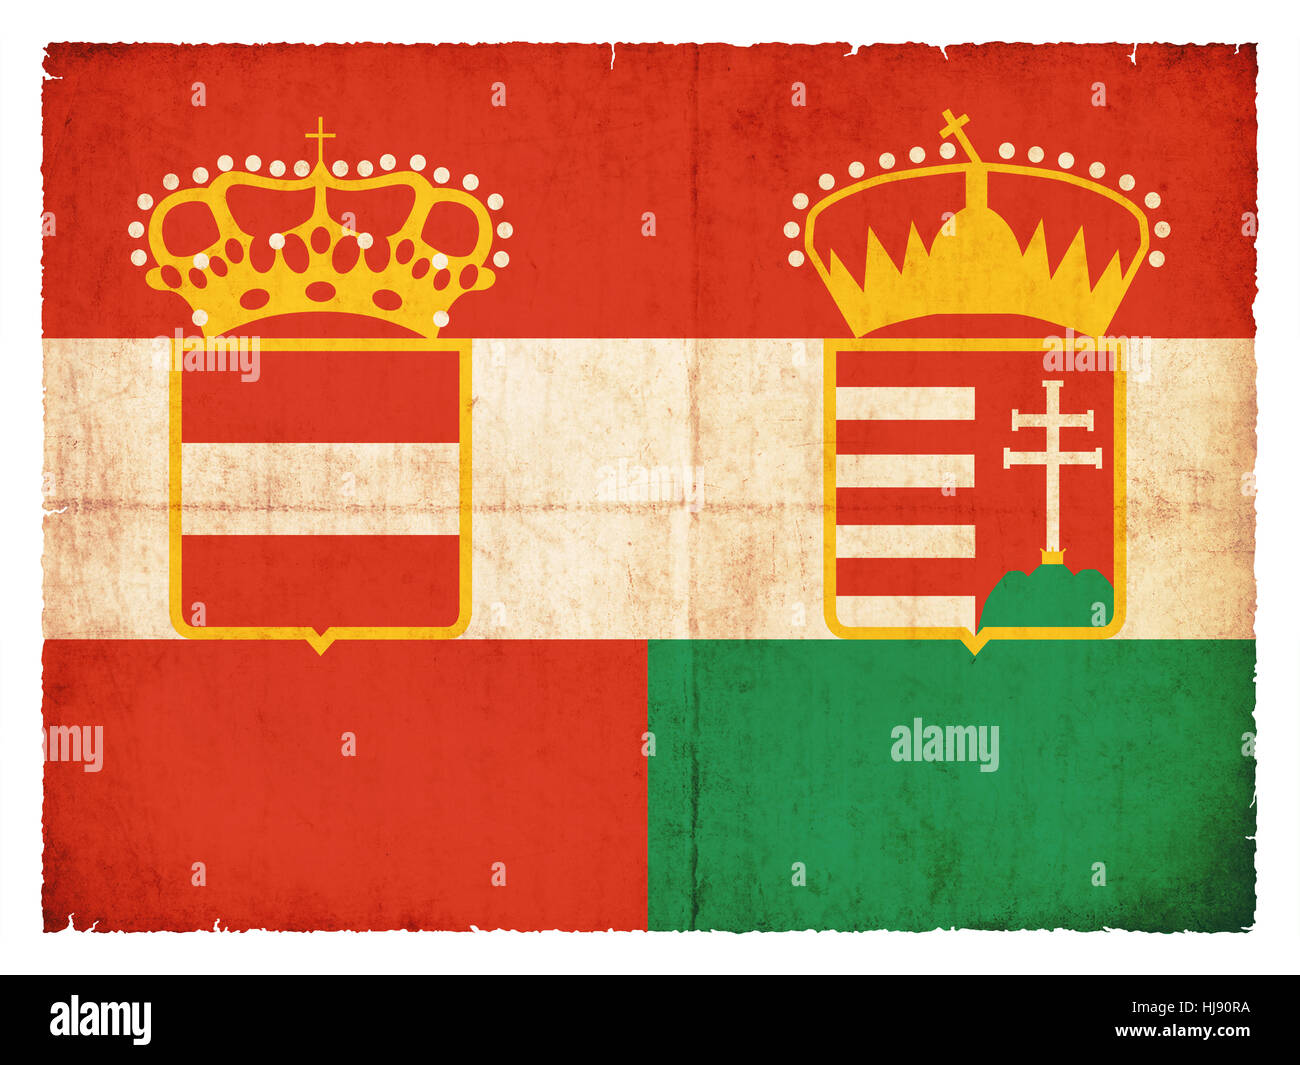 historic grunge flag of the austro-hungarian empire - Stock Image